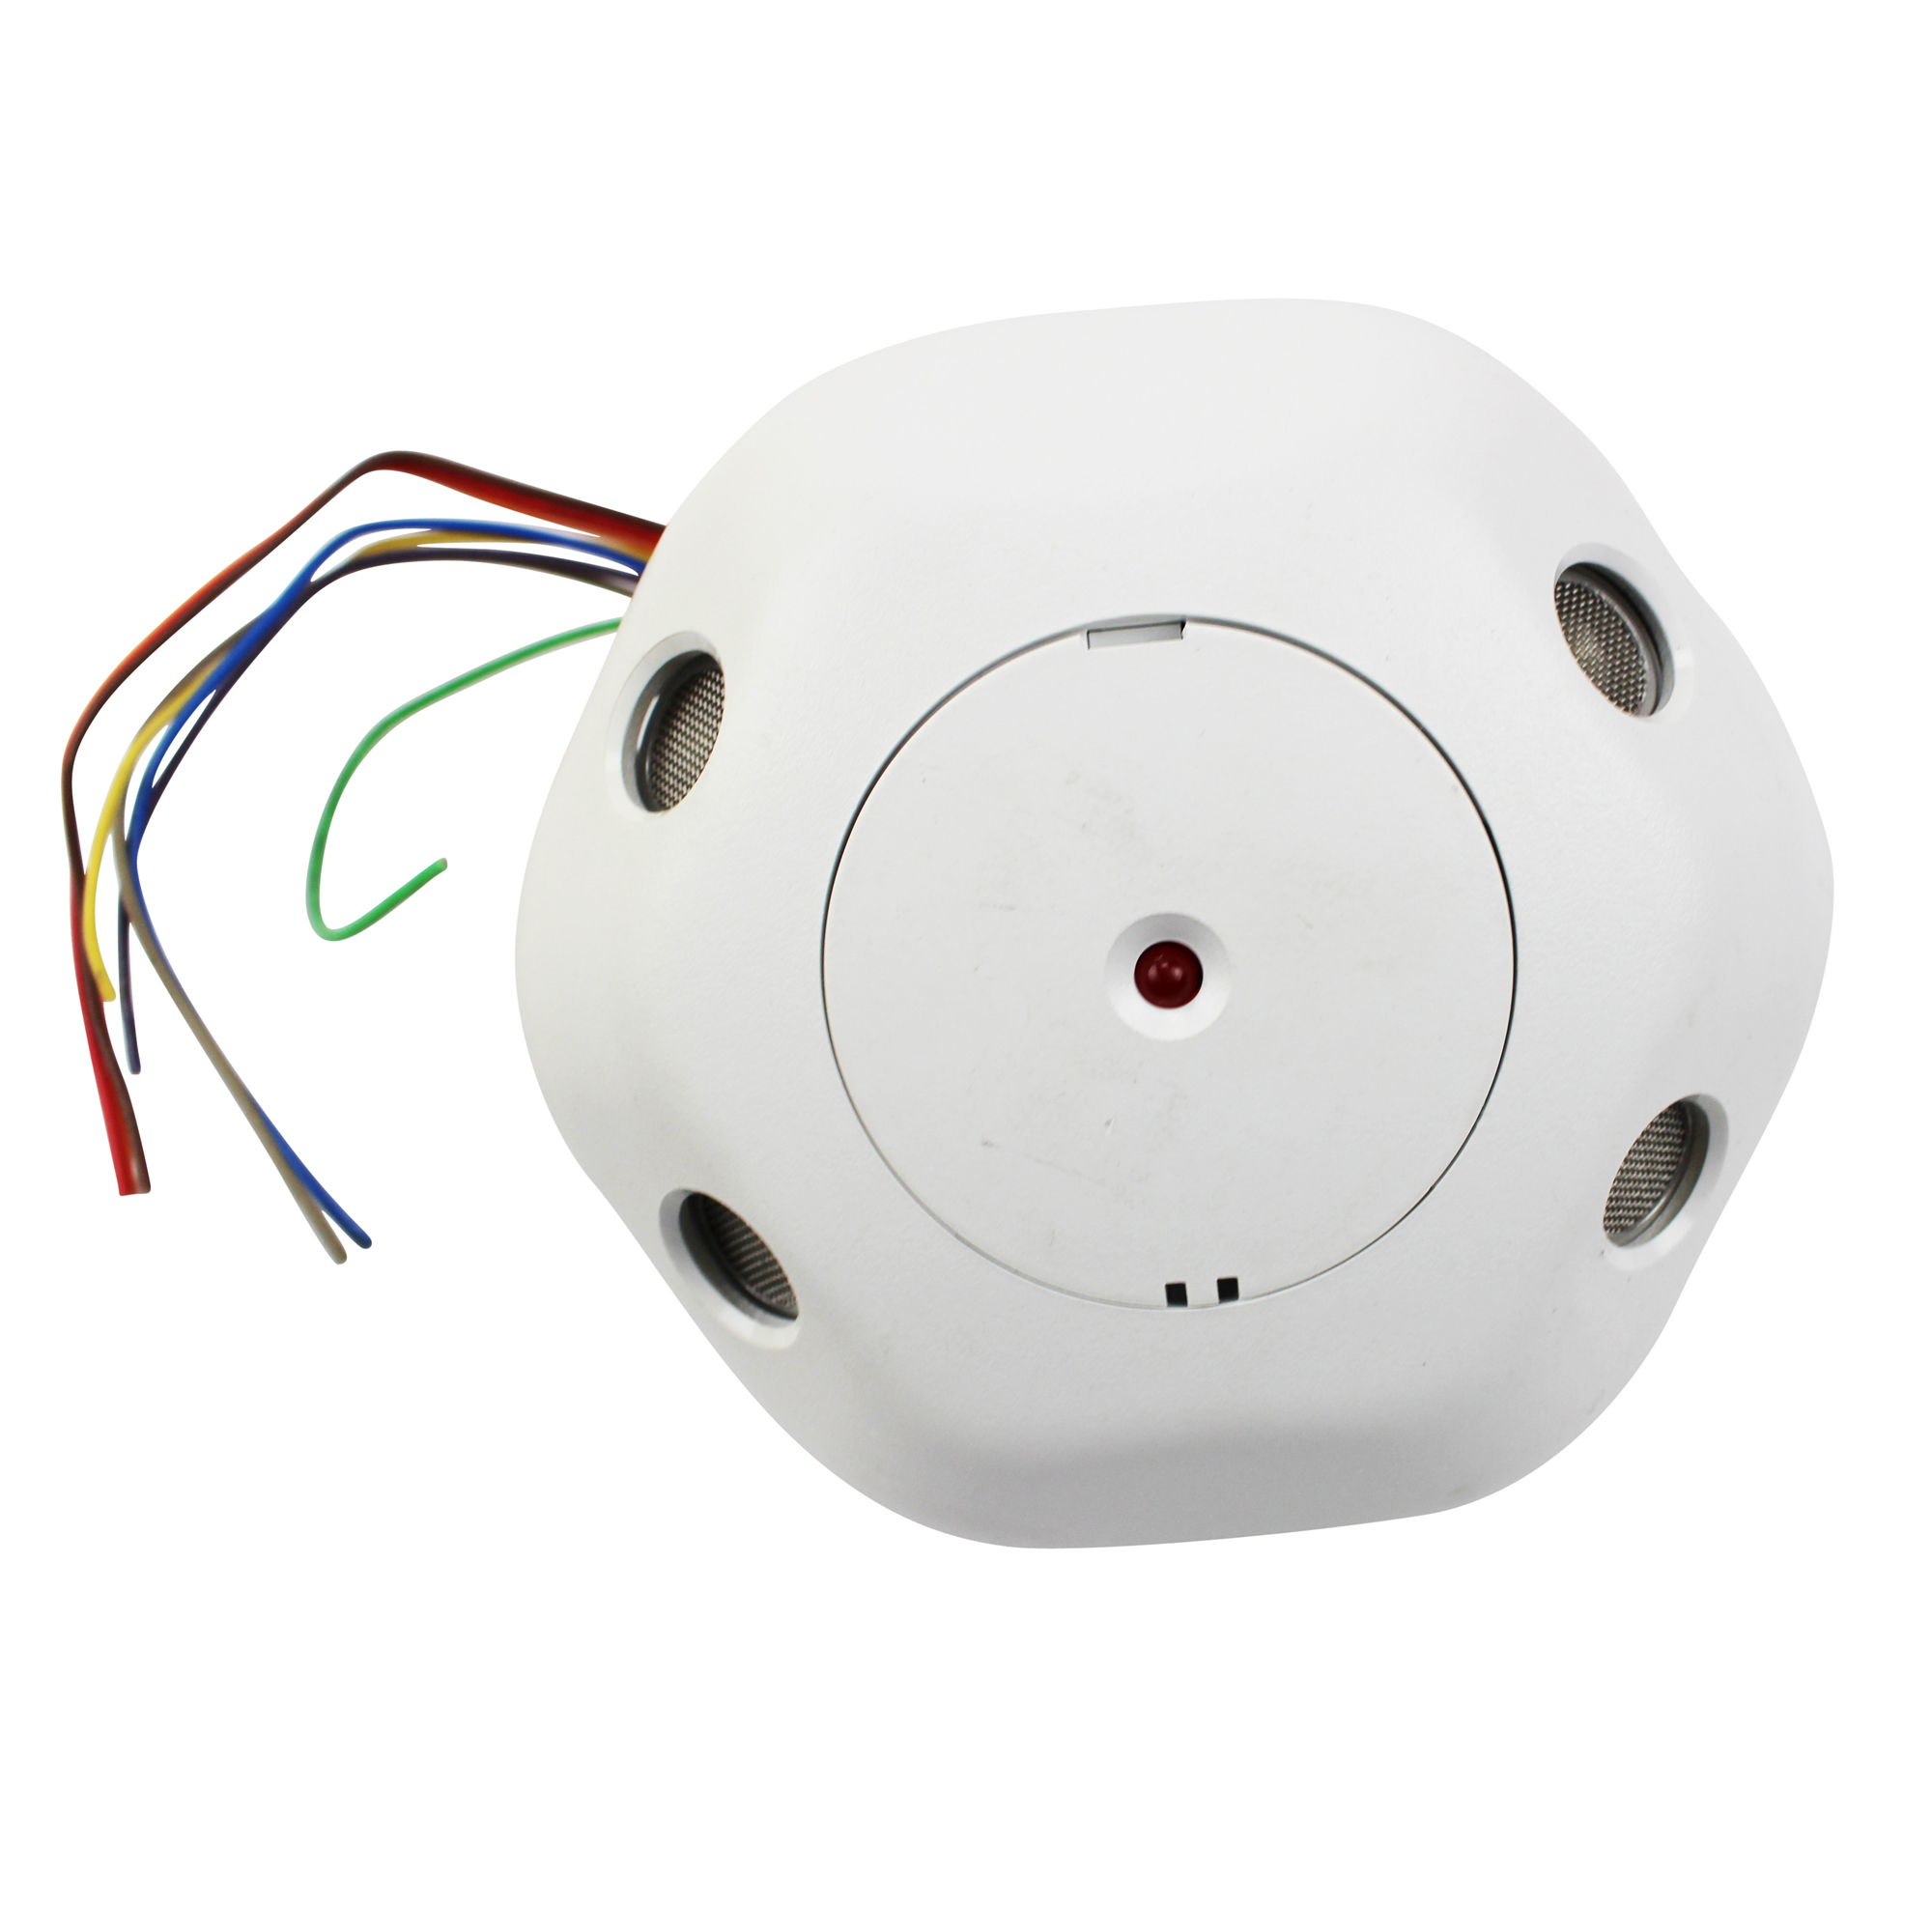 Wattstopper Occupancy Sensor Ceiling: WATTSTOPPER Wt-1100 Ultrasonic Ceiling Occupancy Sensor